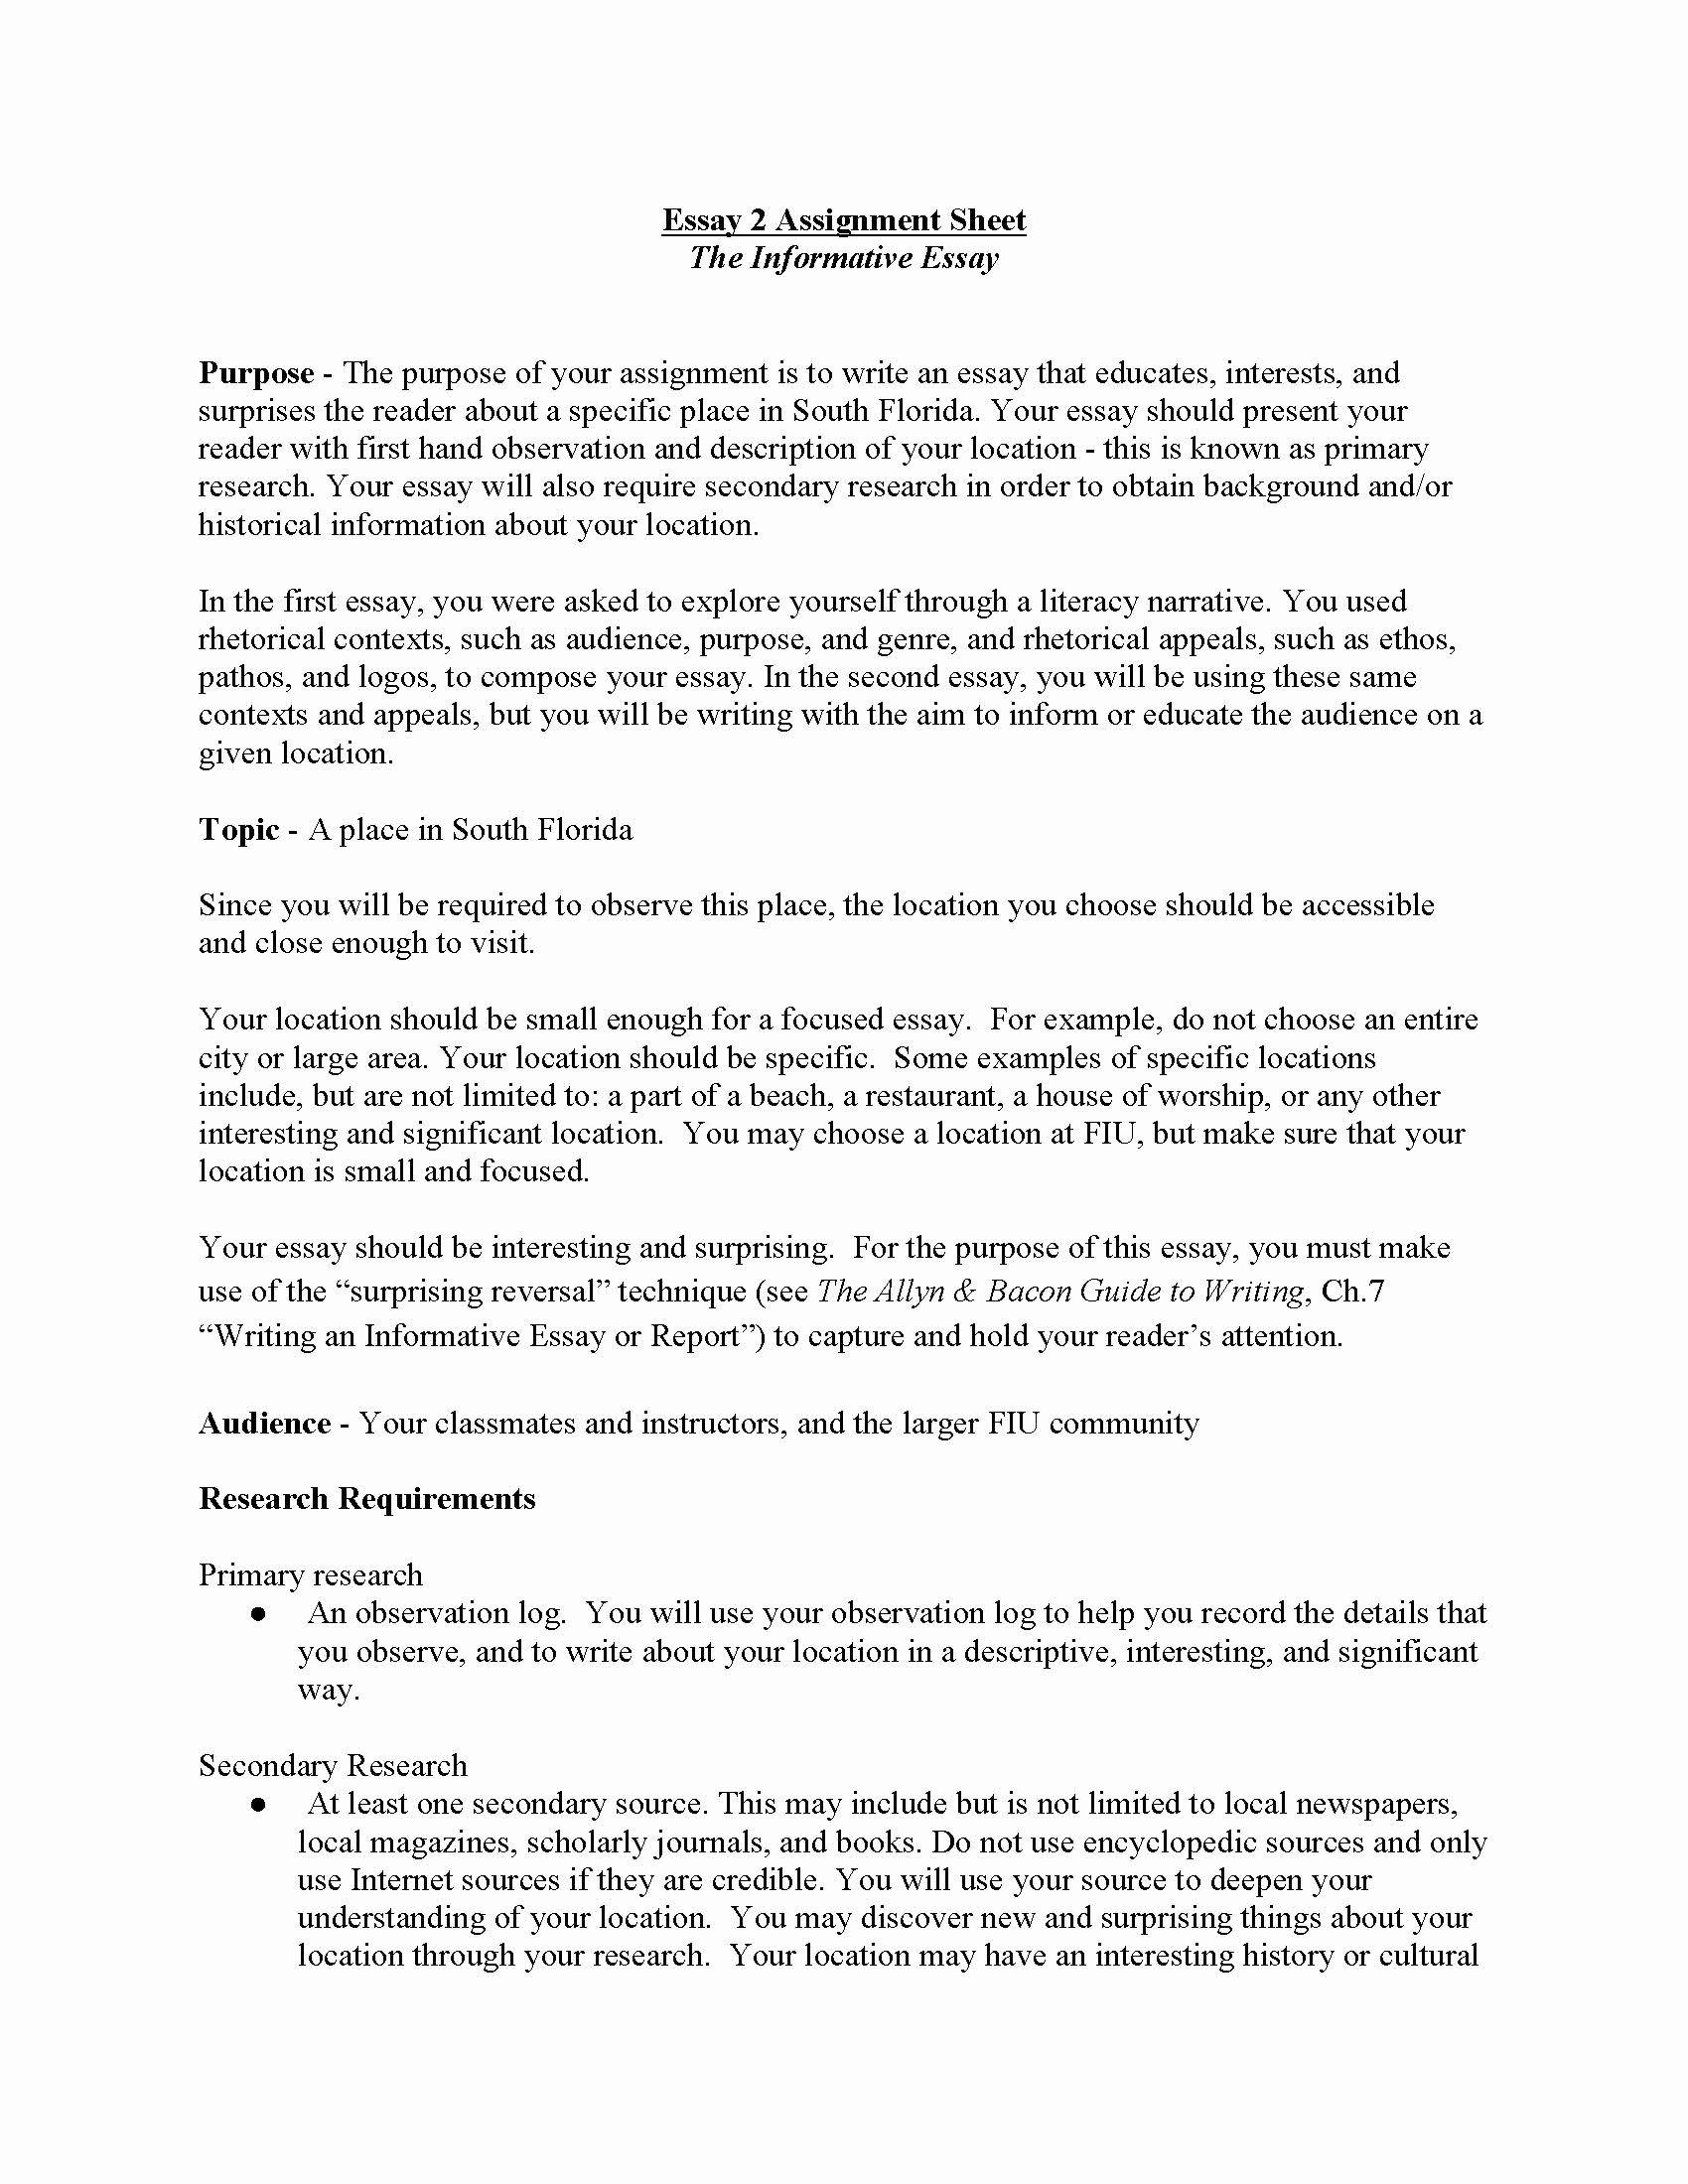 High School Essay Writing Worksheets Lovely Essay Writing Worksheets High School Pdf Activities Teaching